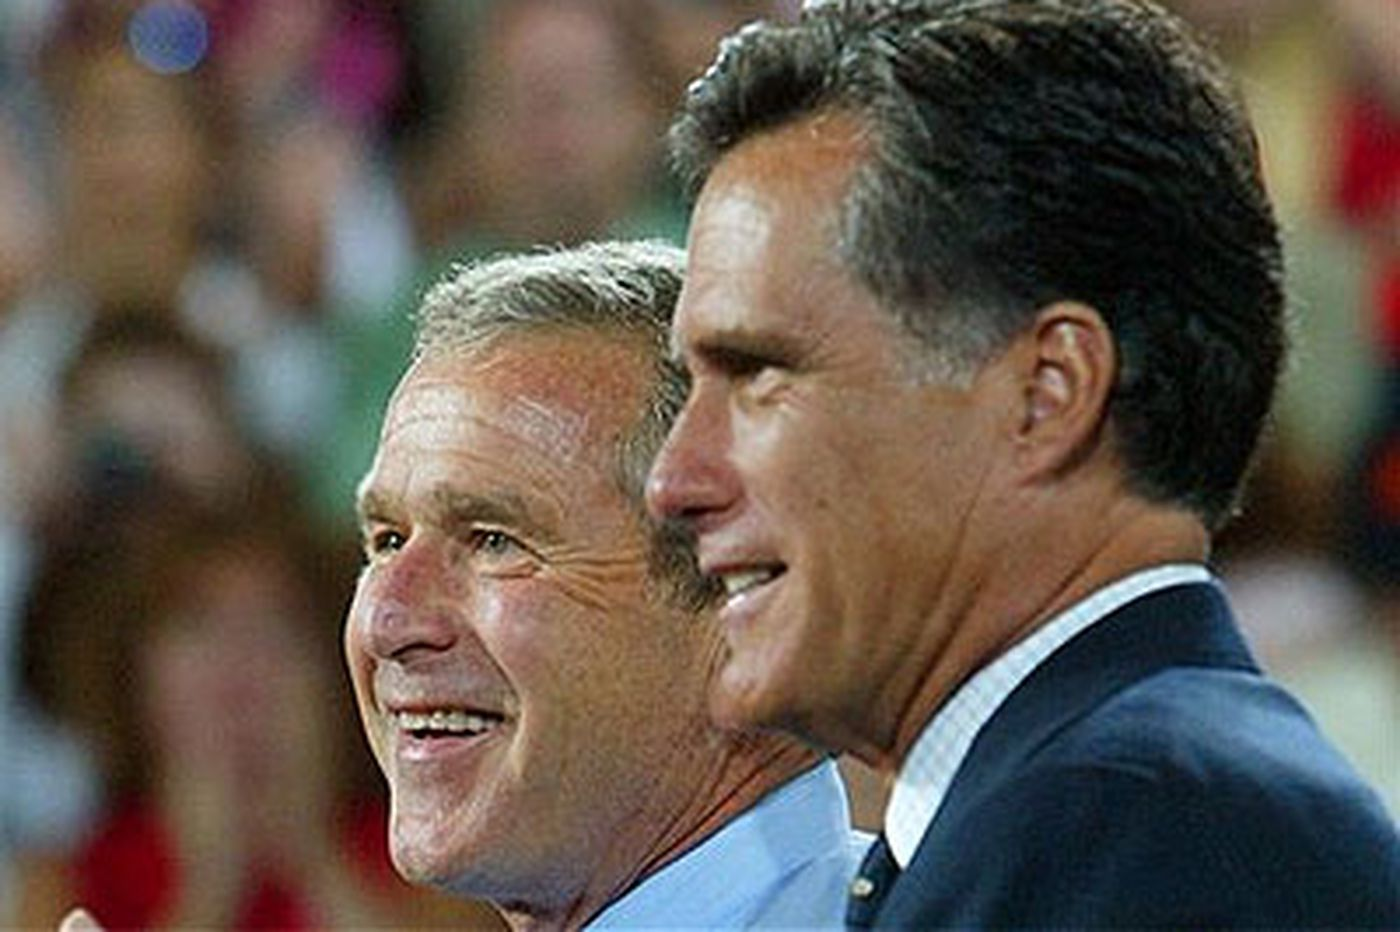 Bush says he backs Romney